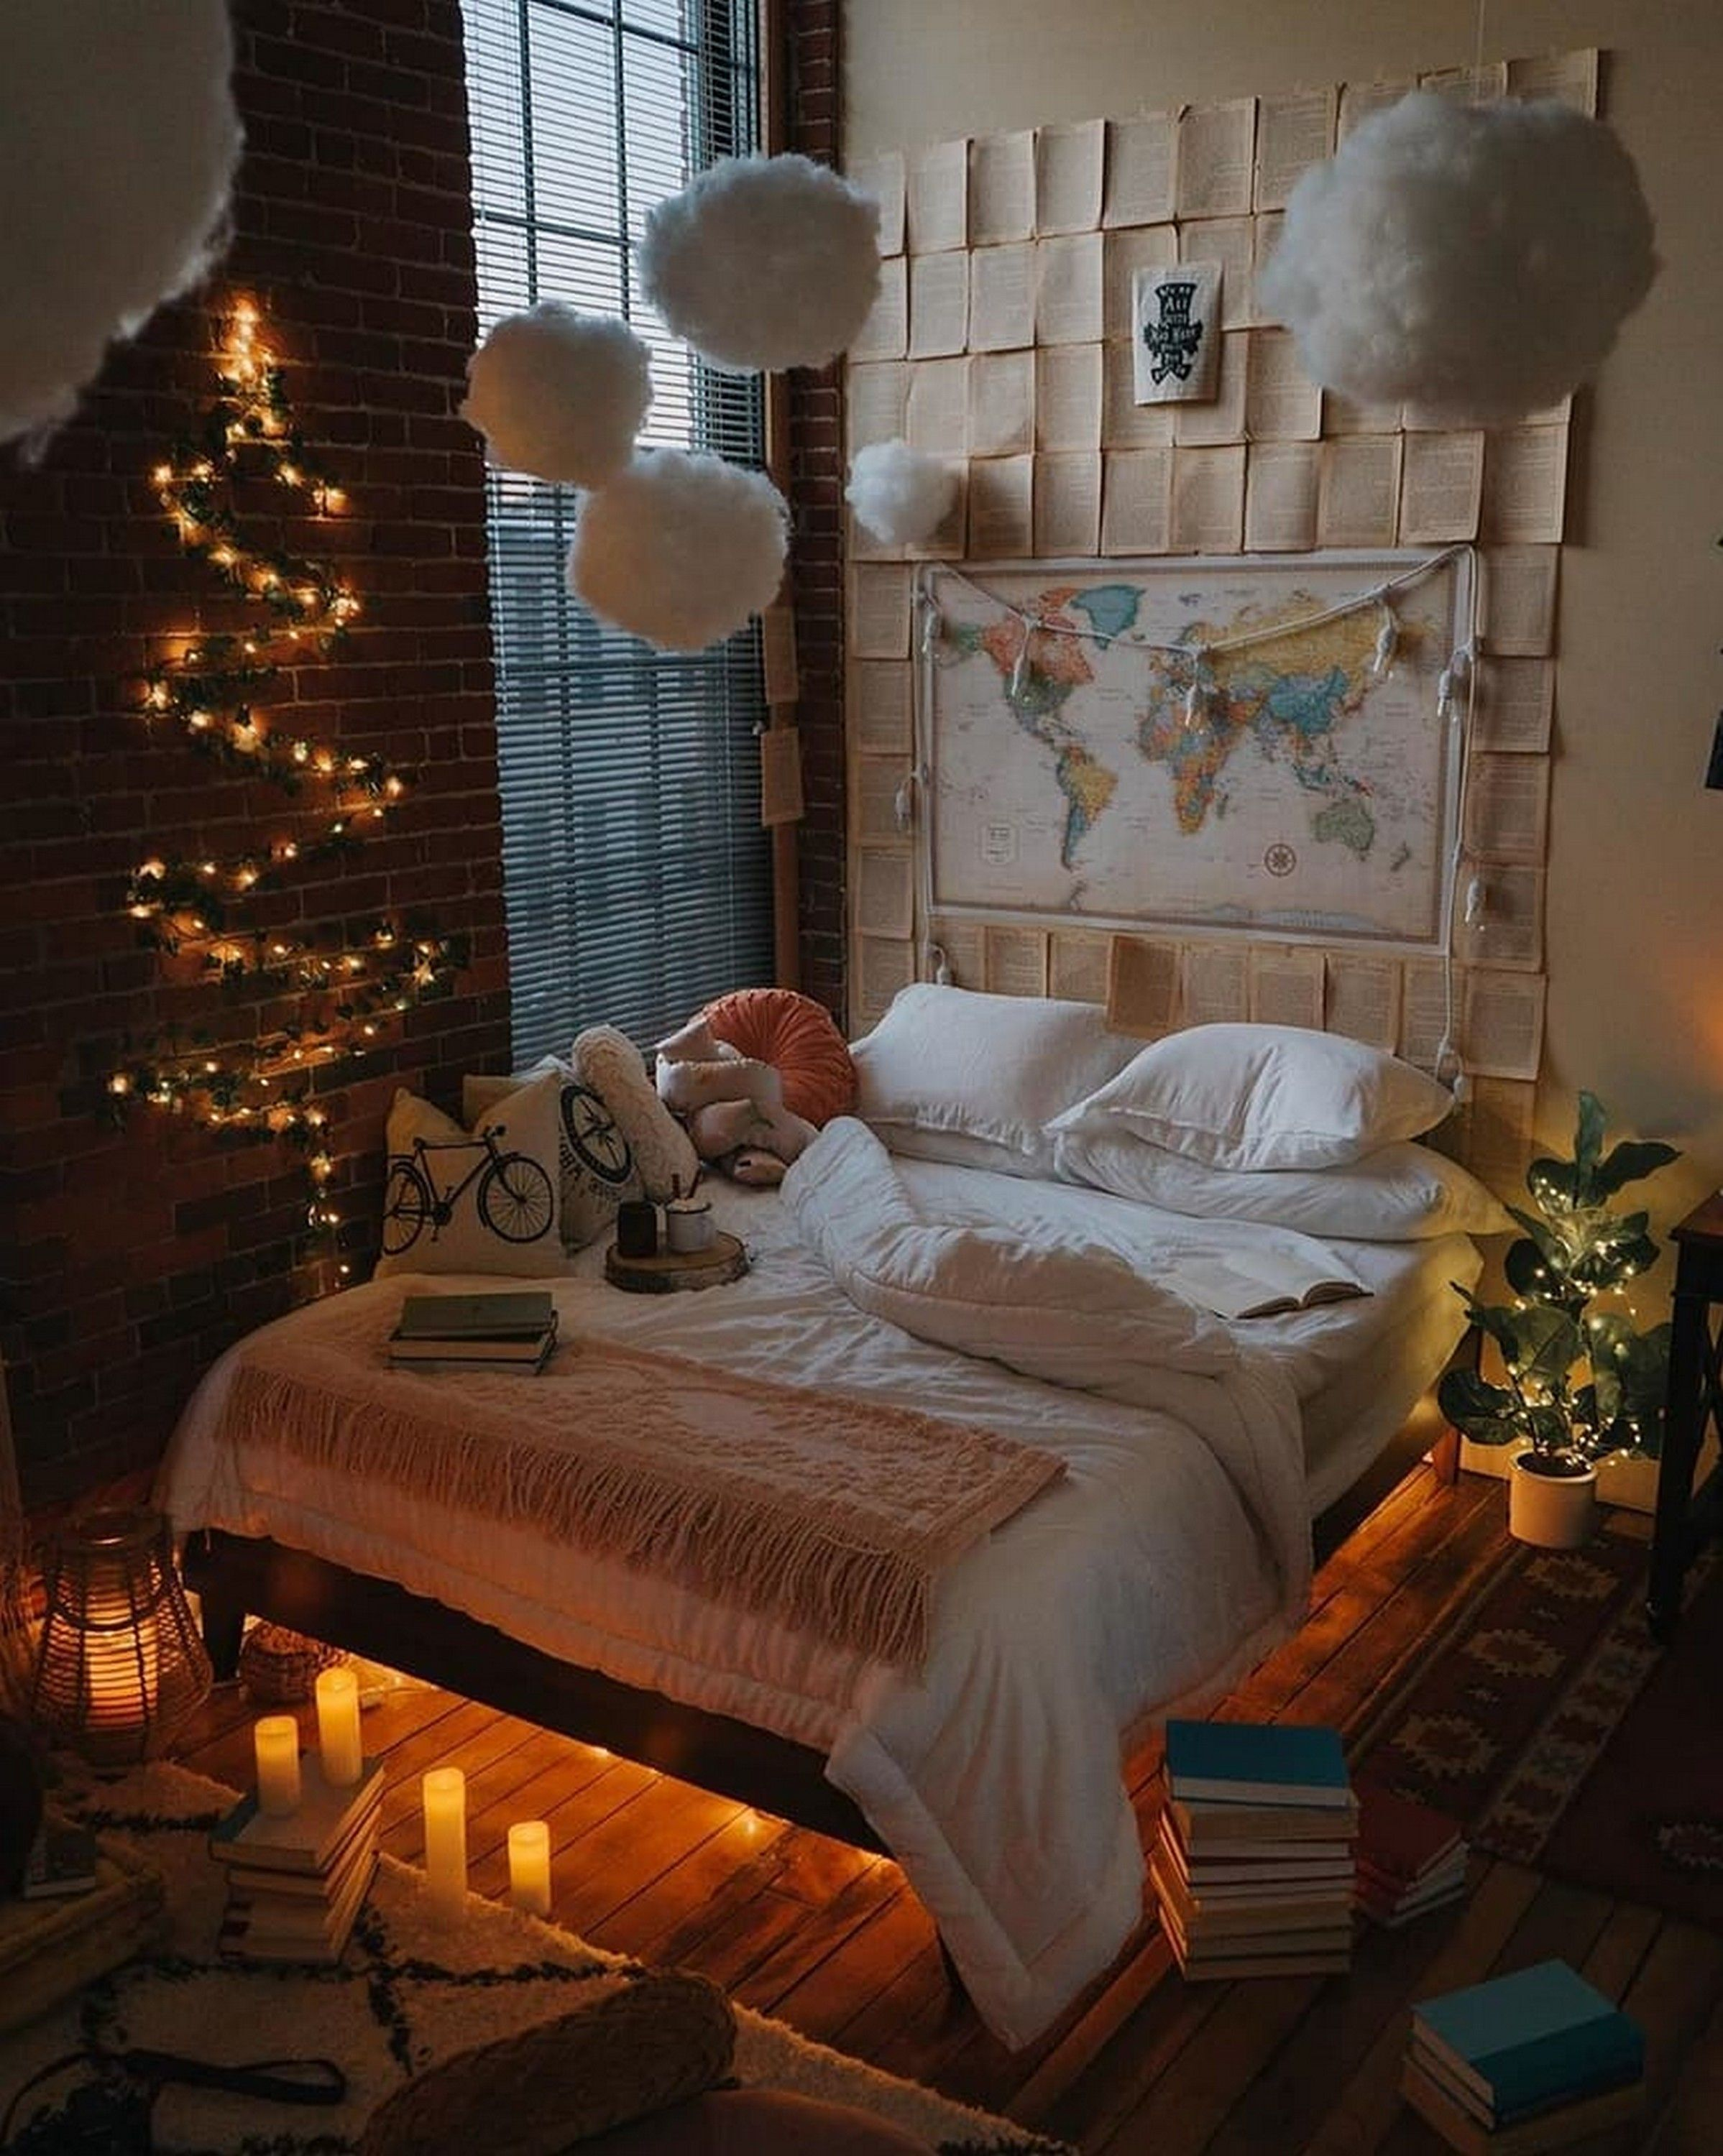 pinhayley ☼ on future home inspiration  aesthetic